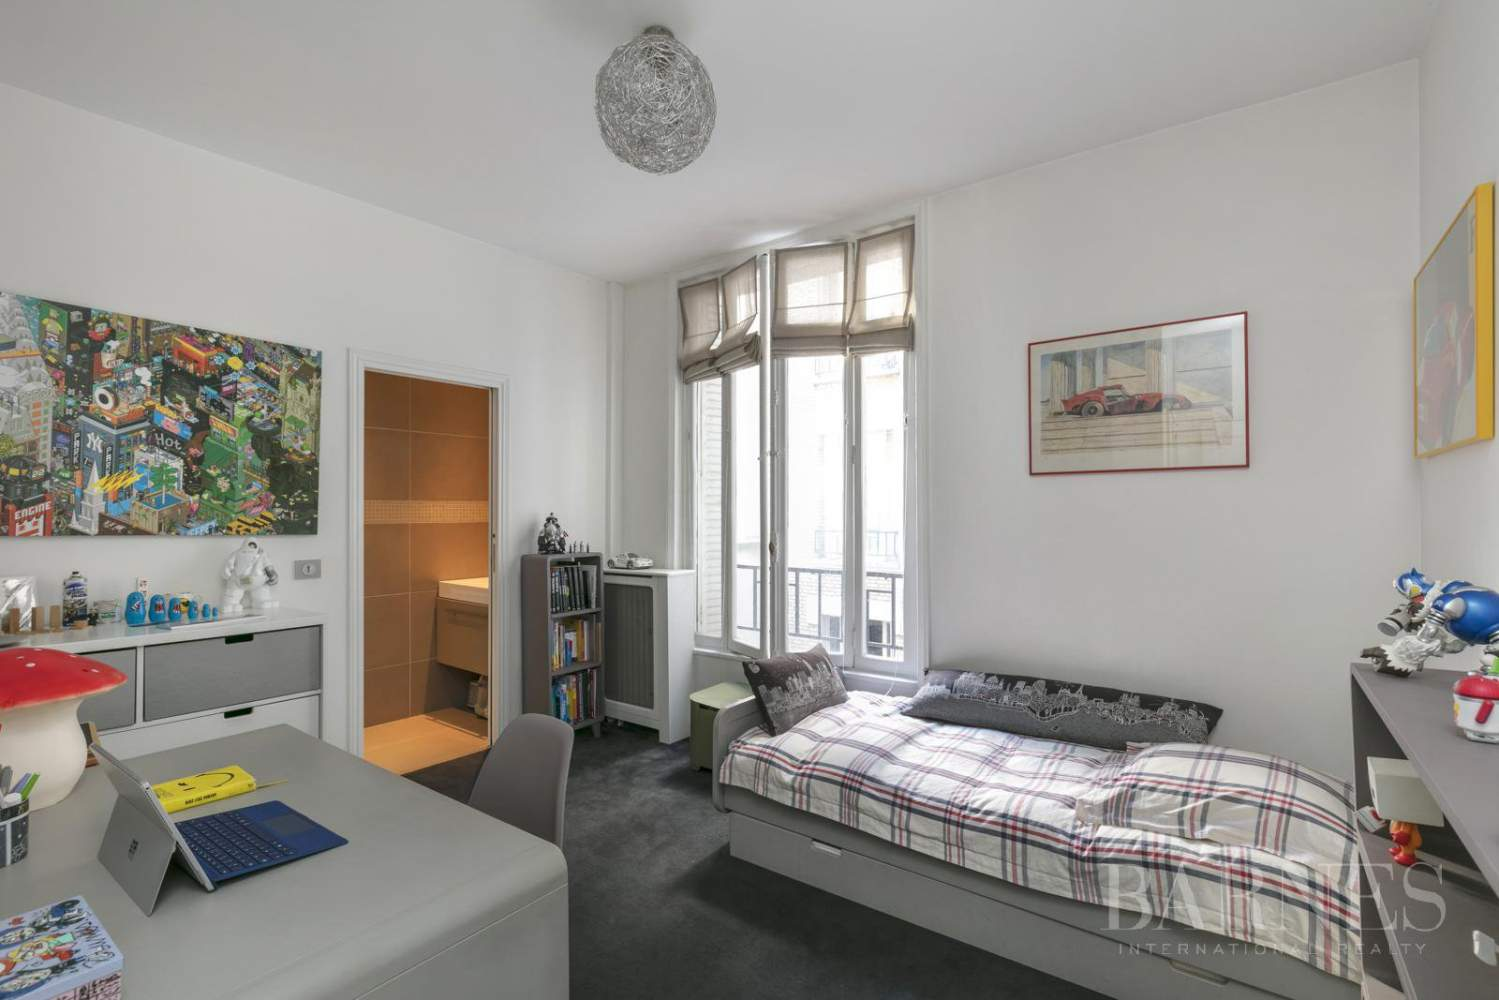 NEUILLY - BOIS - 5-ROOM APARTMENT - 1930s BUILDING picture 4